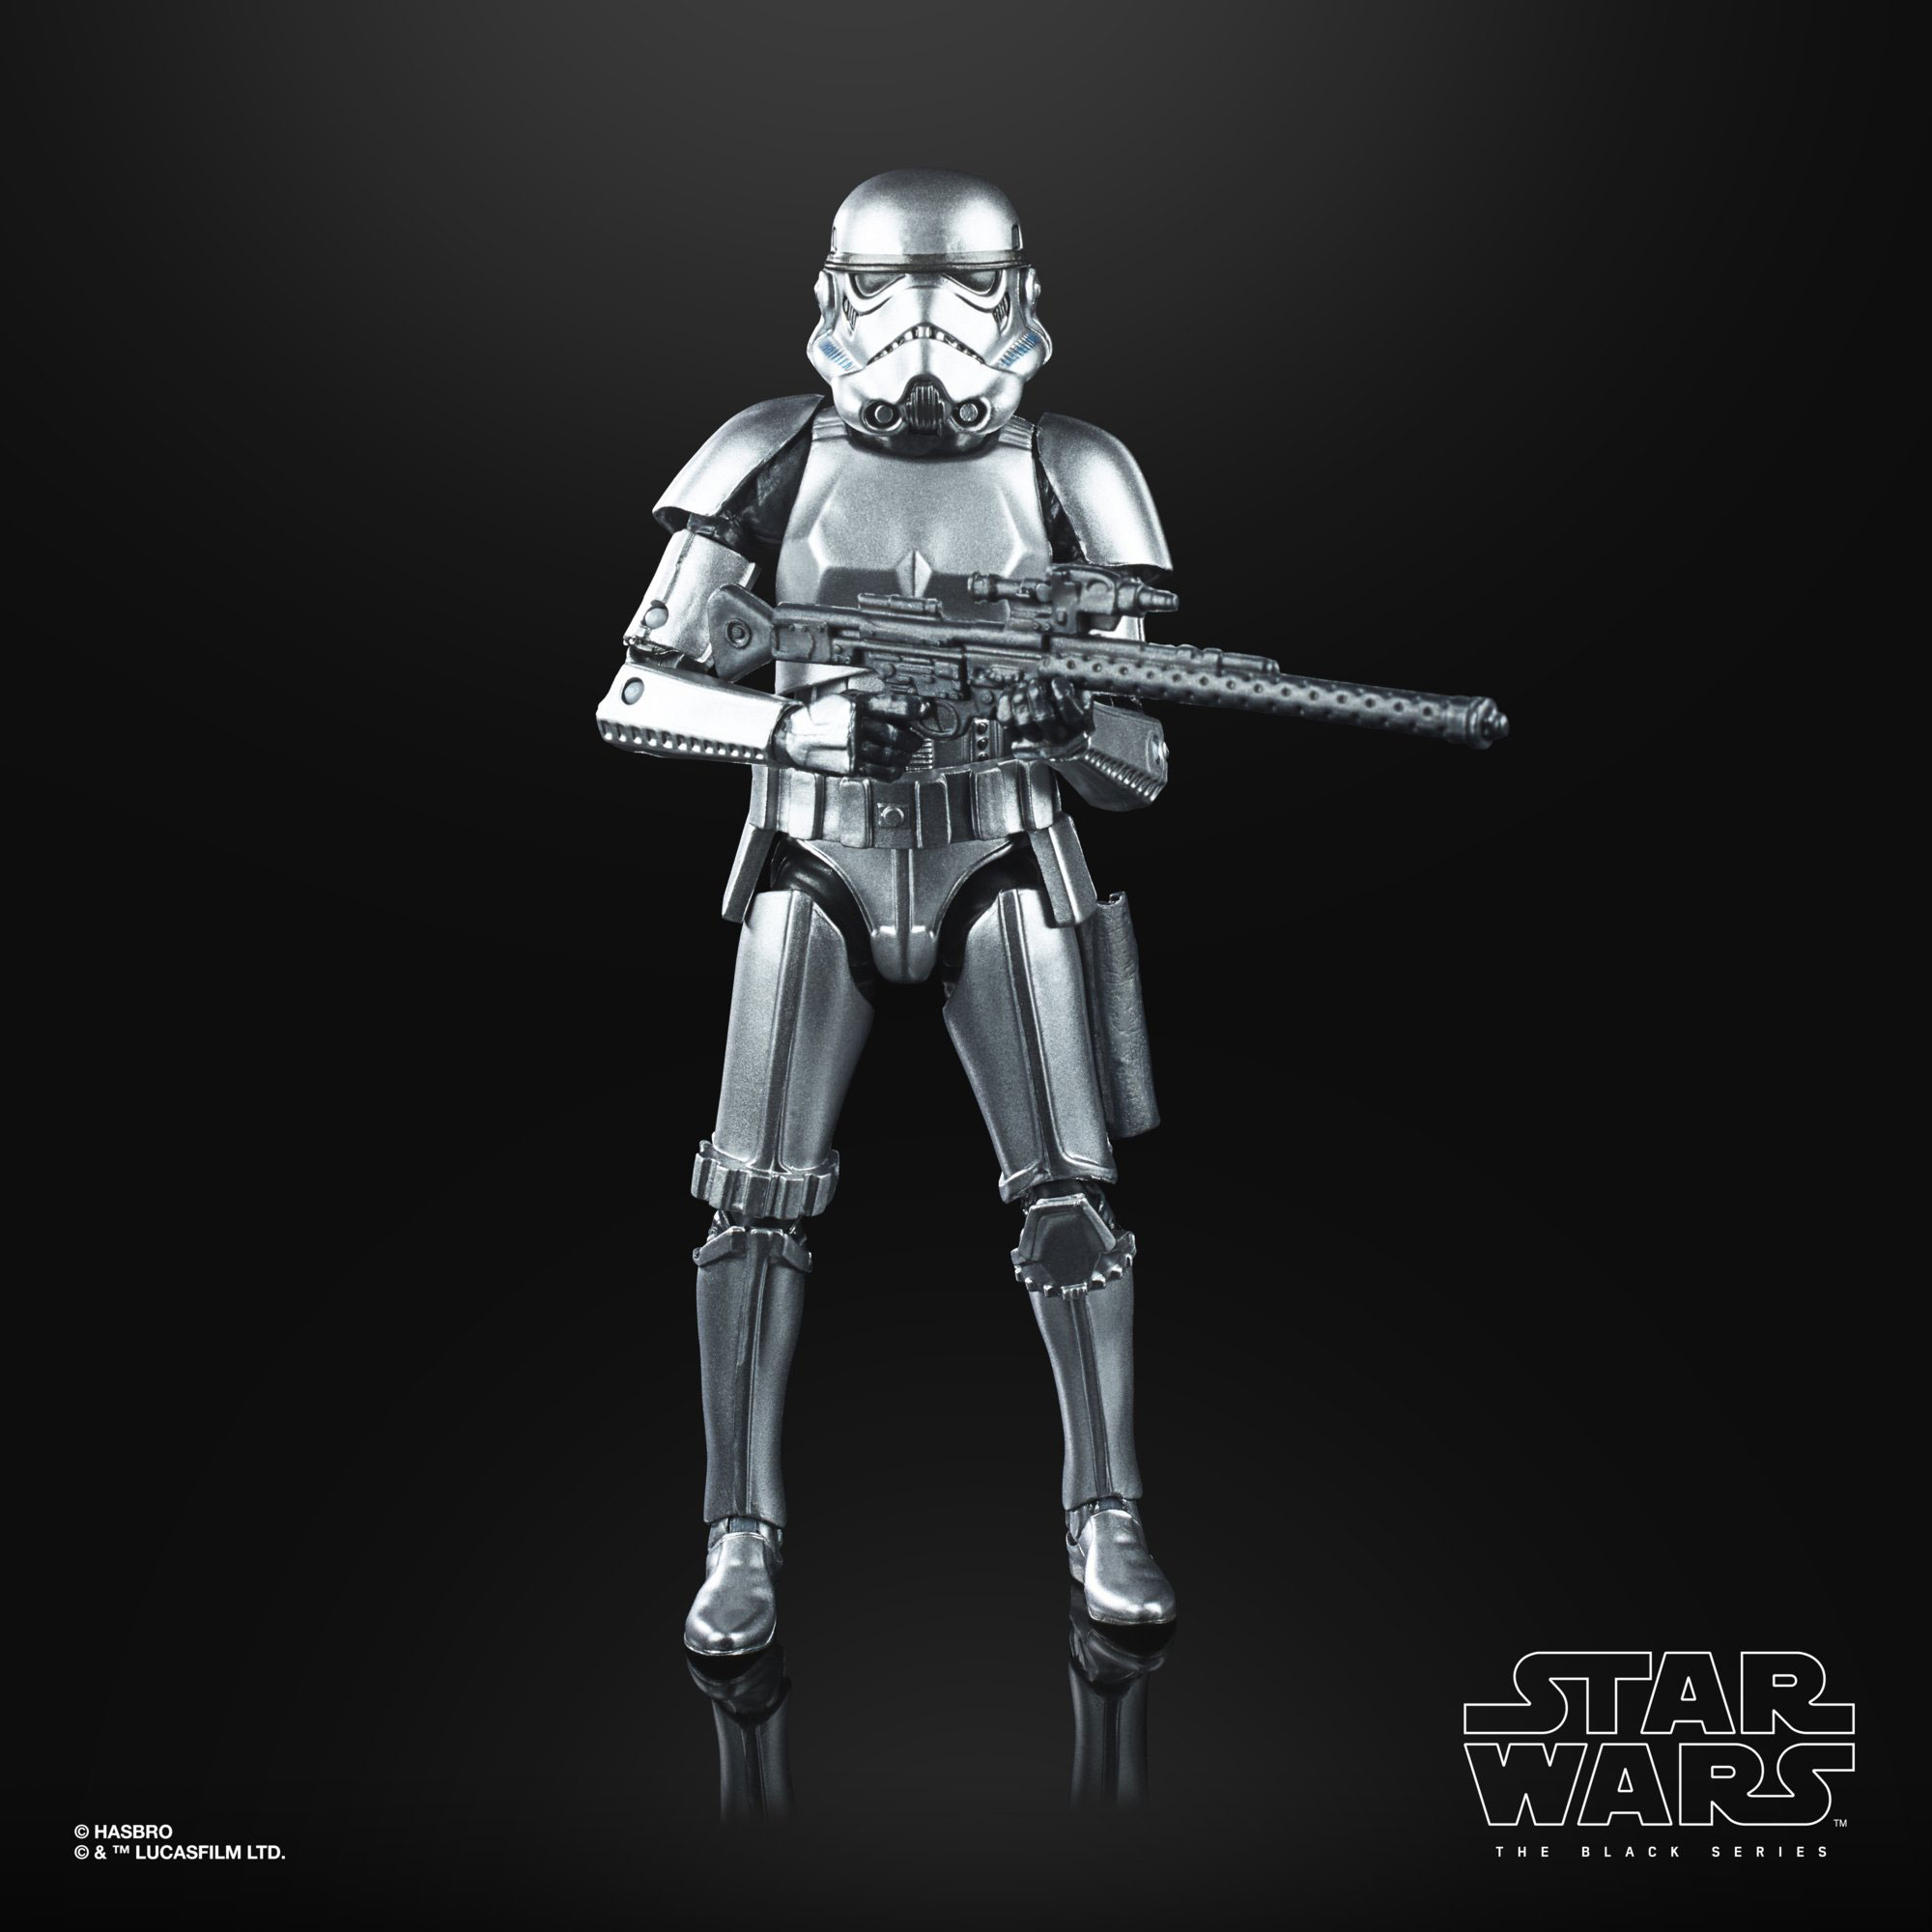 star-wars-black-series-carbonized-stormtrooper-action-figure-2